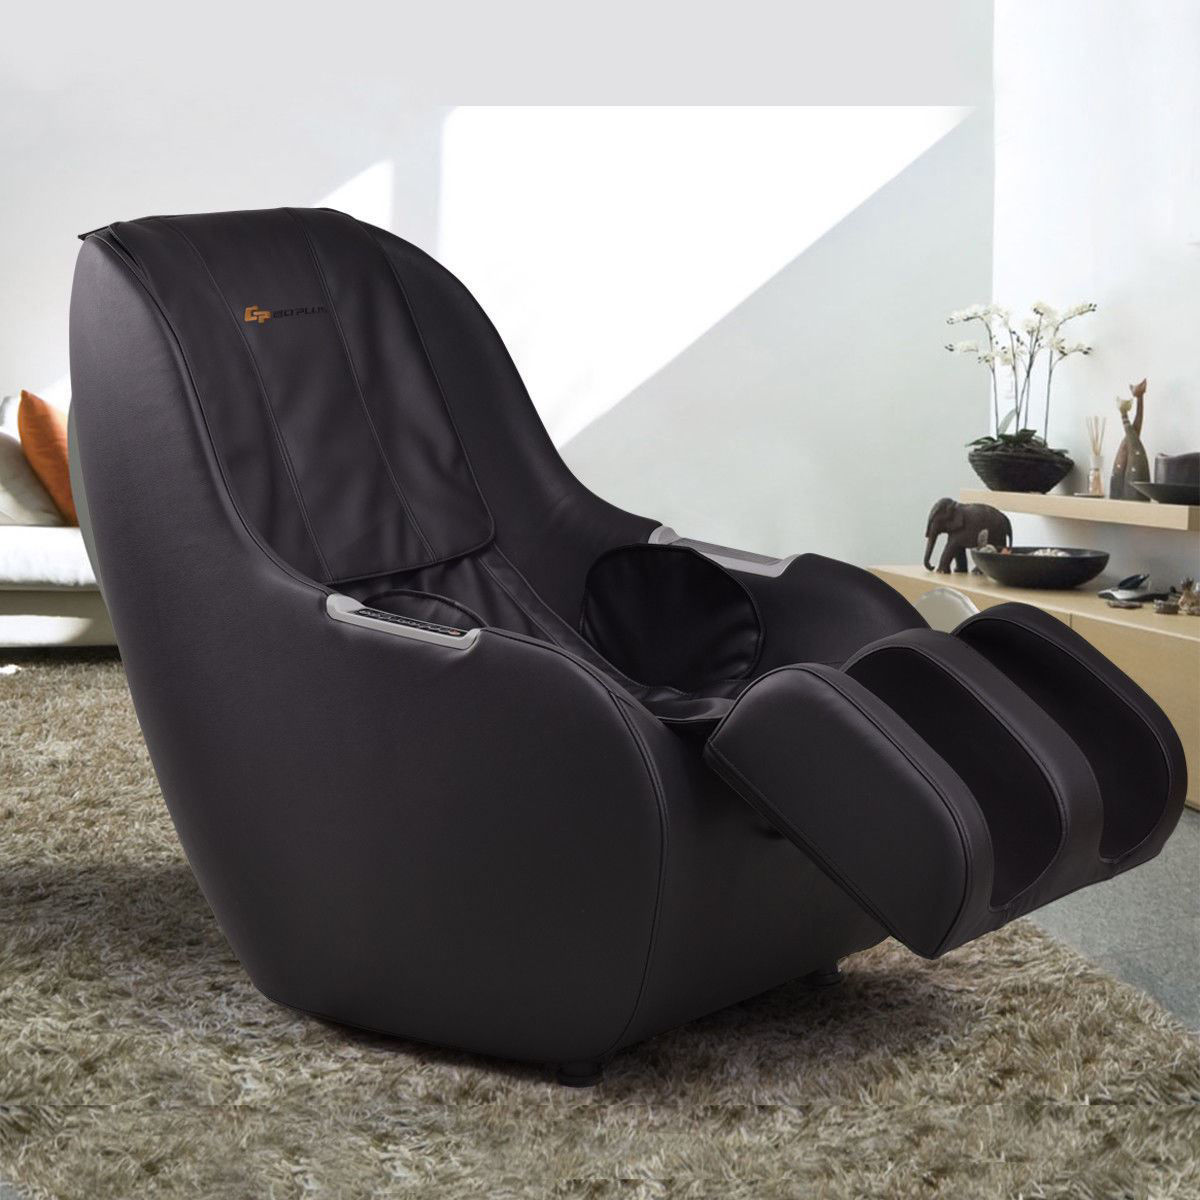 Picture of Full Body Massage Chair 3D Electric - Black